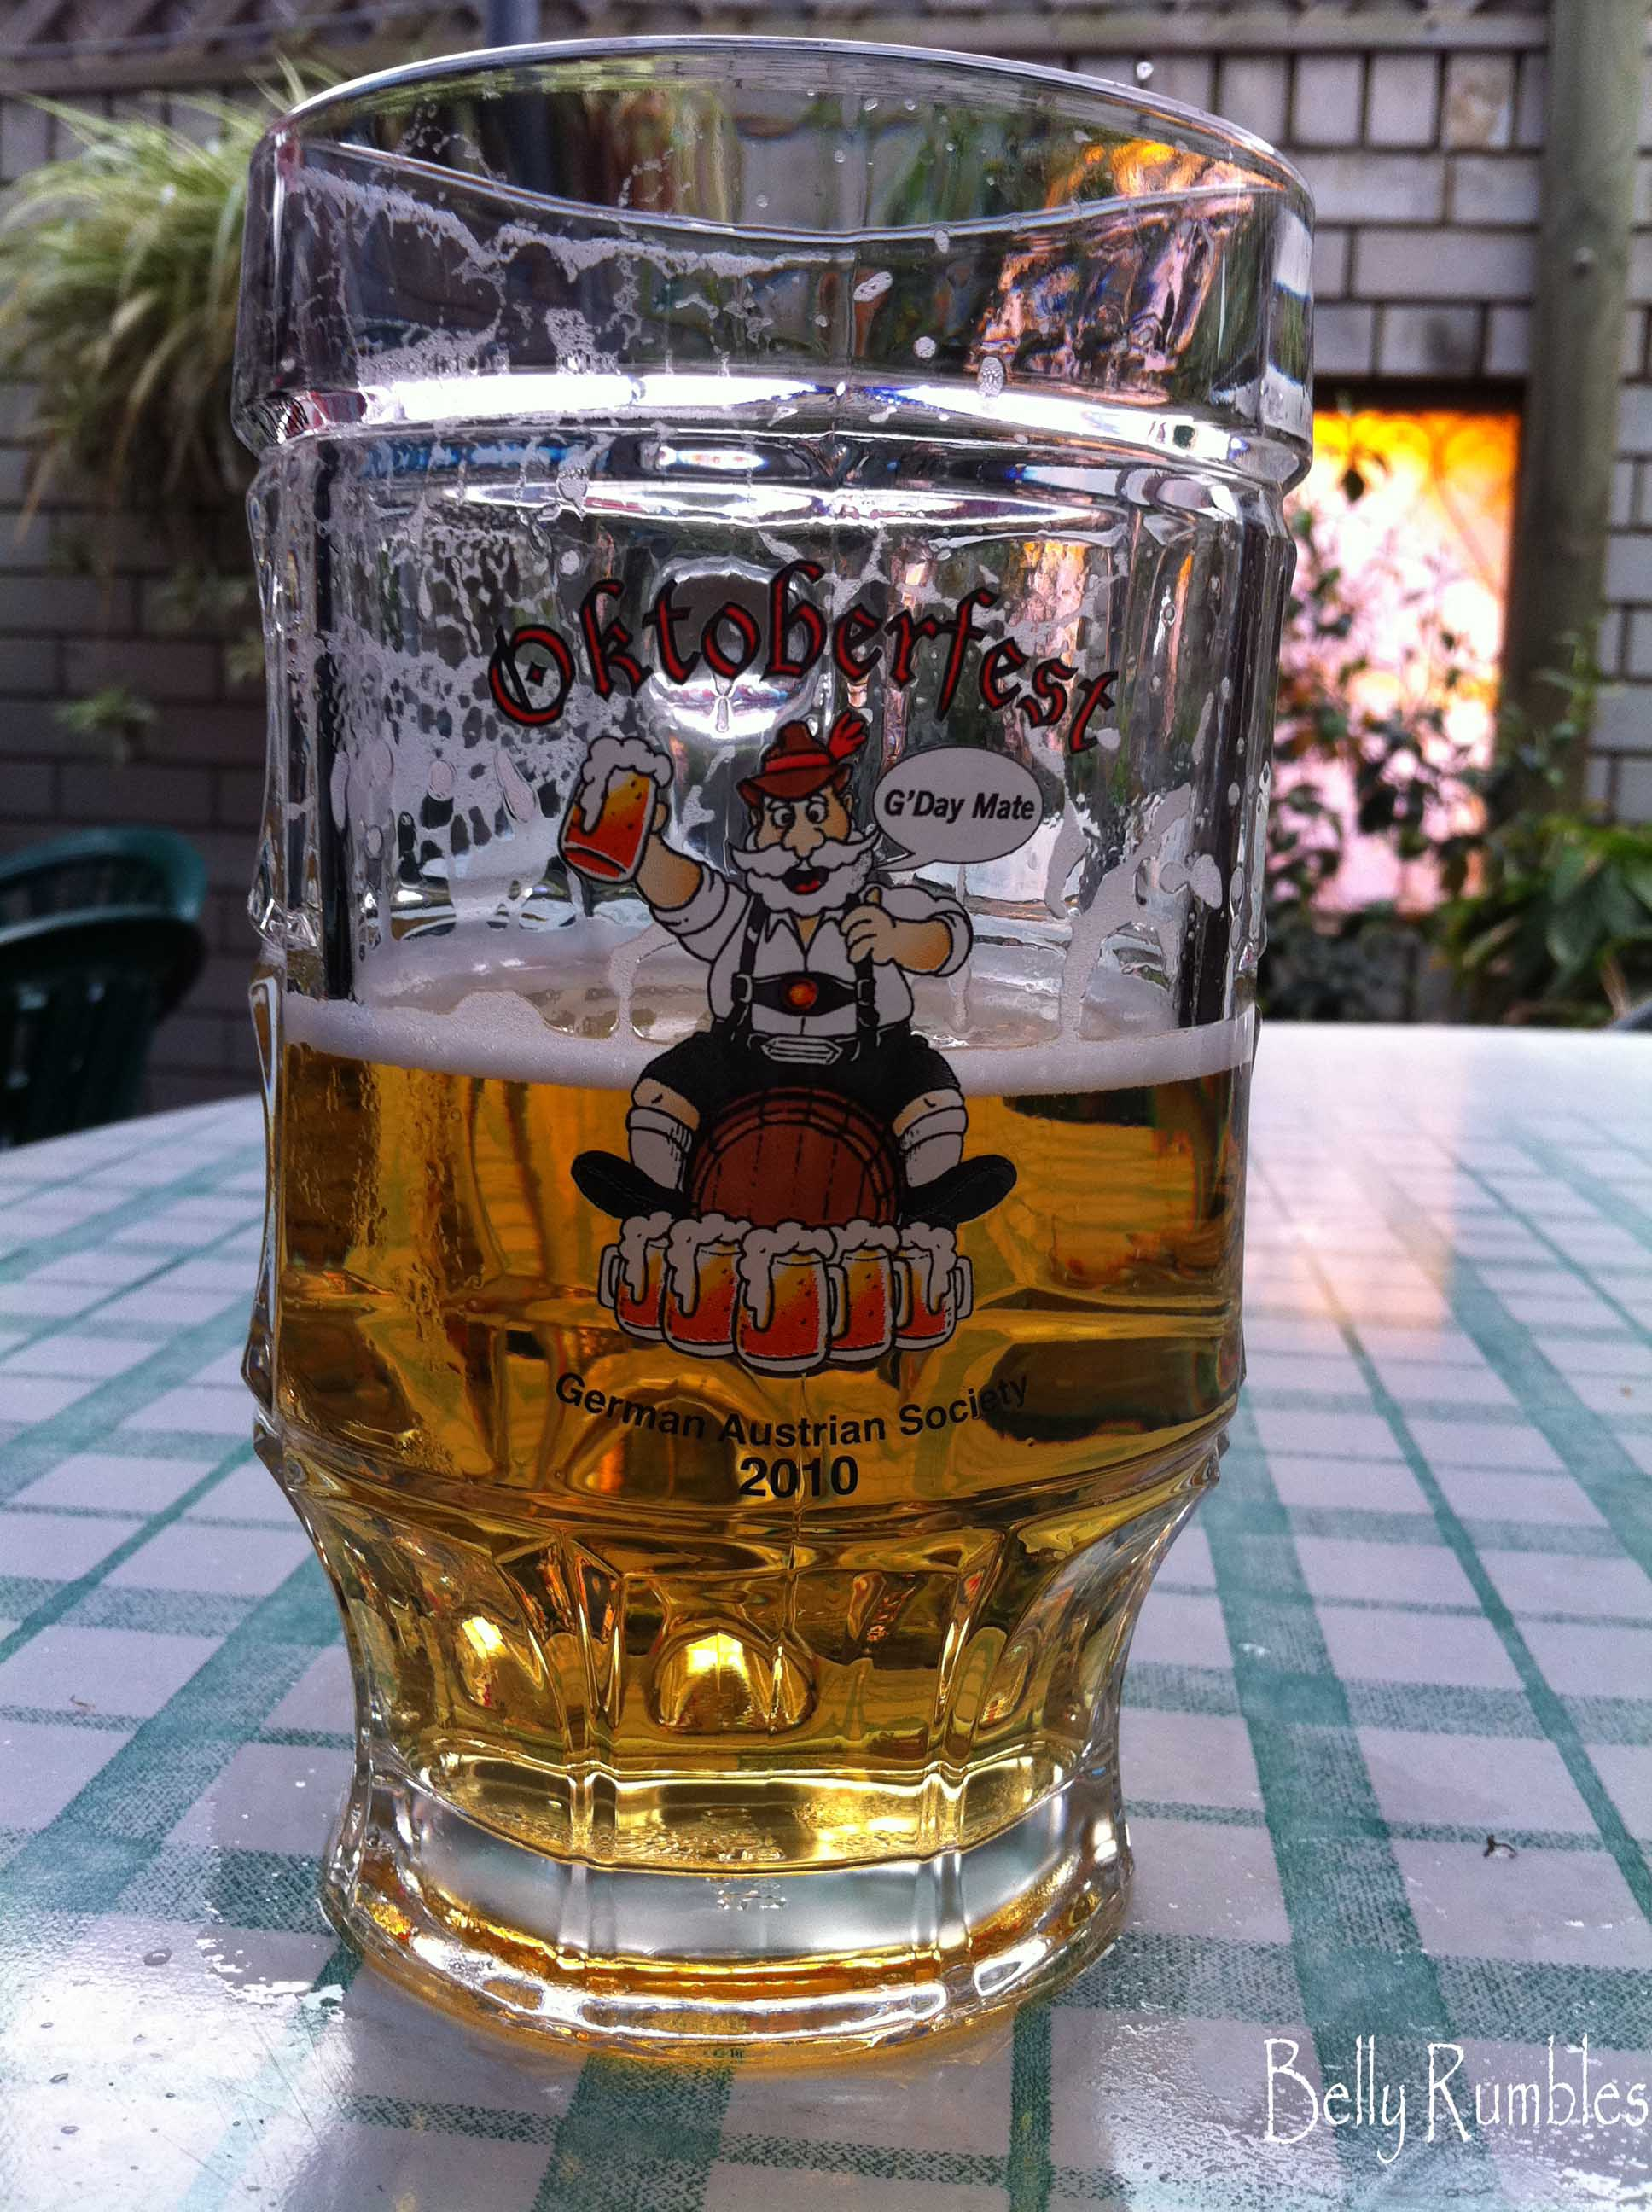 Oktoberfest – German Austrian Club